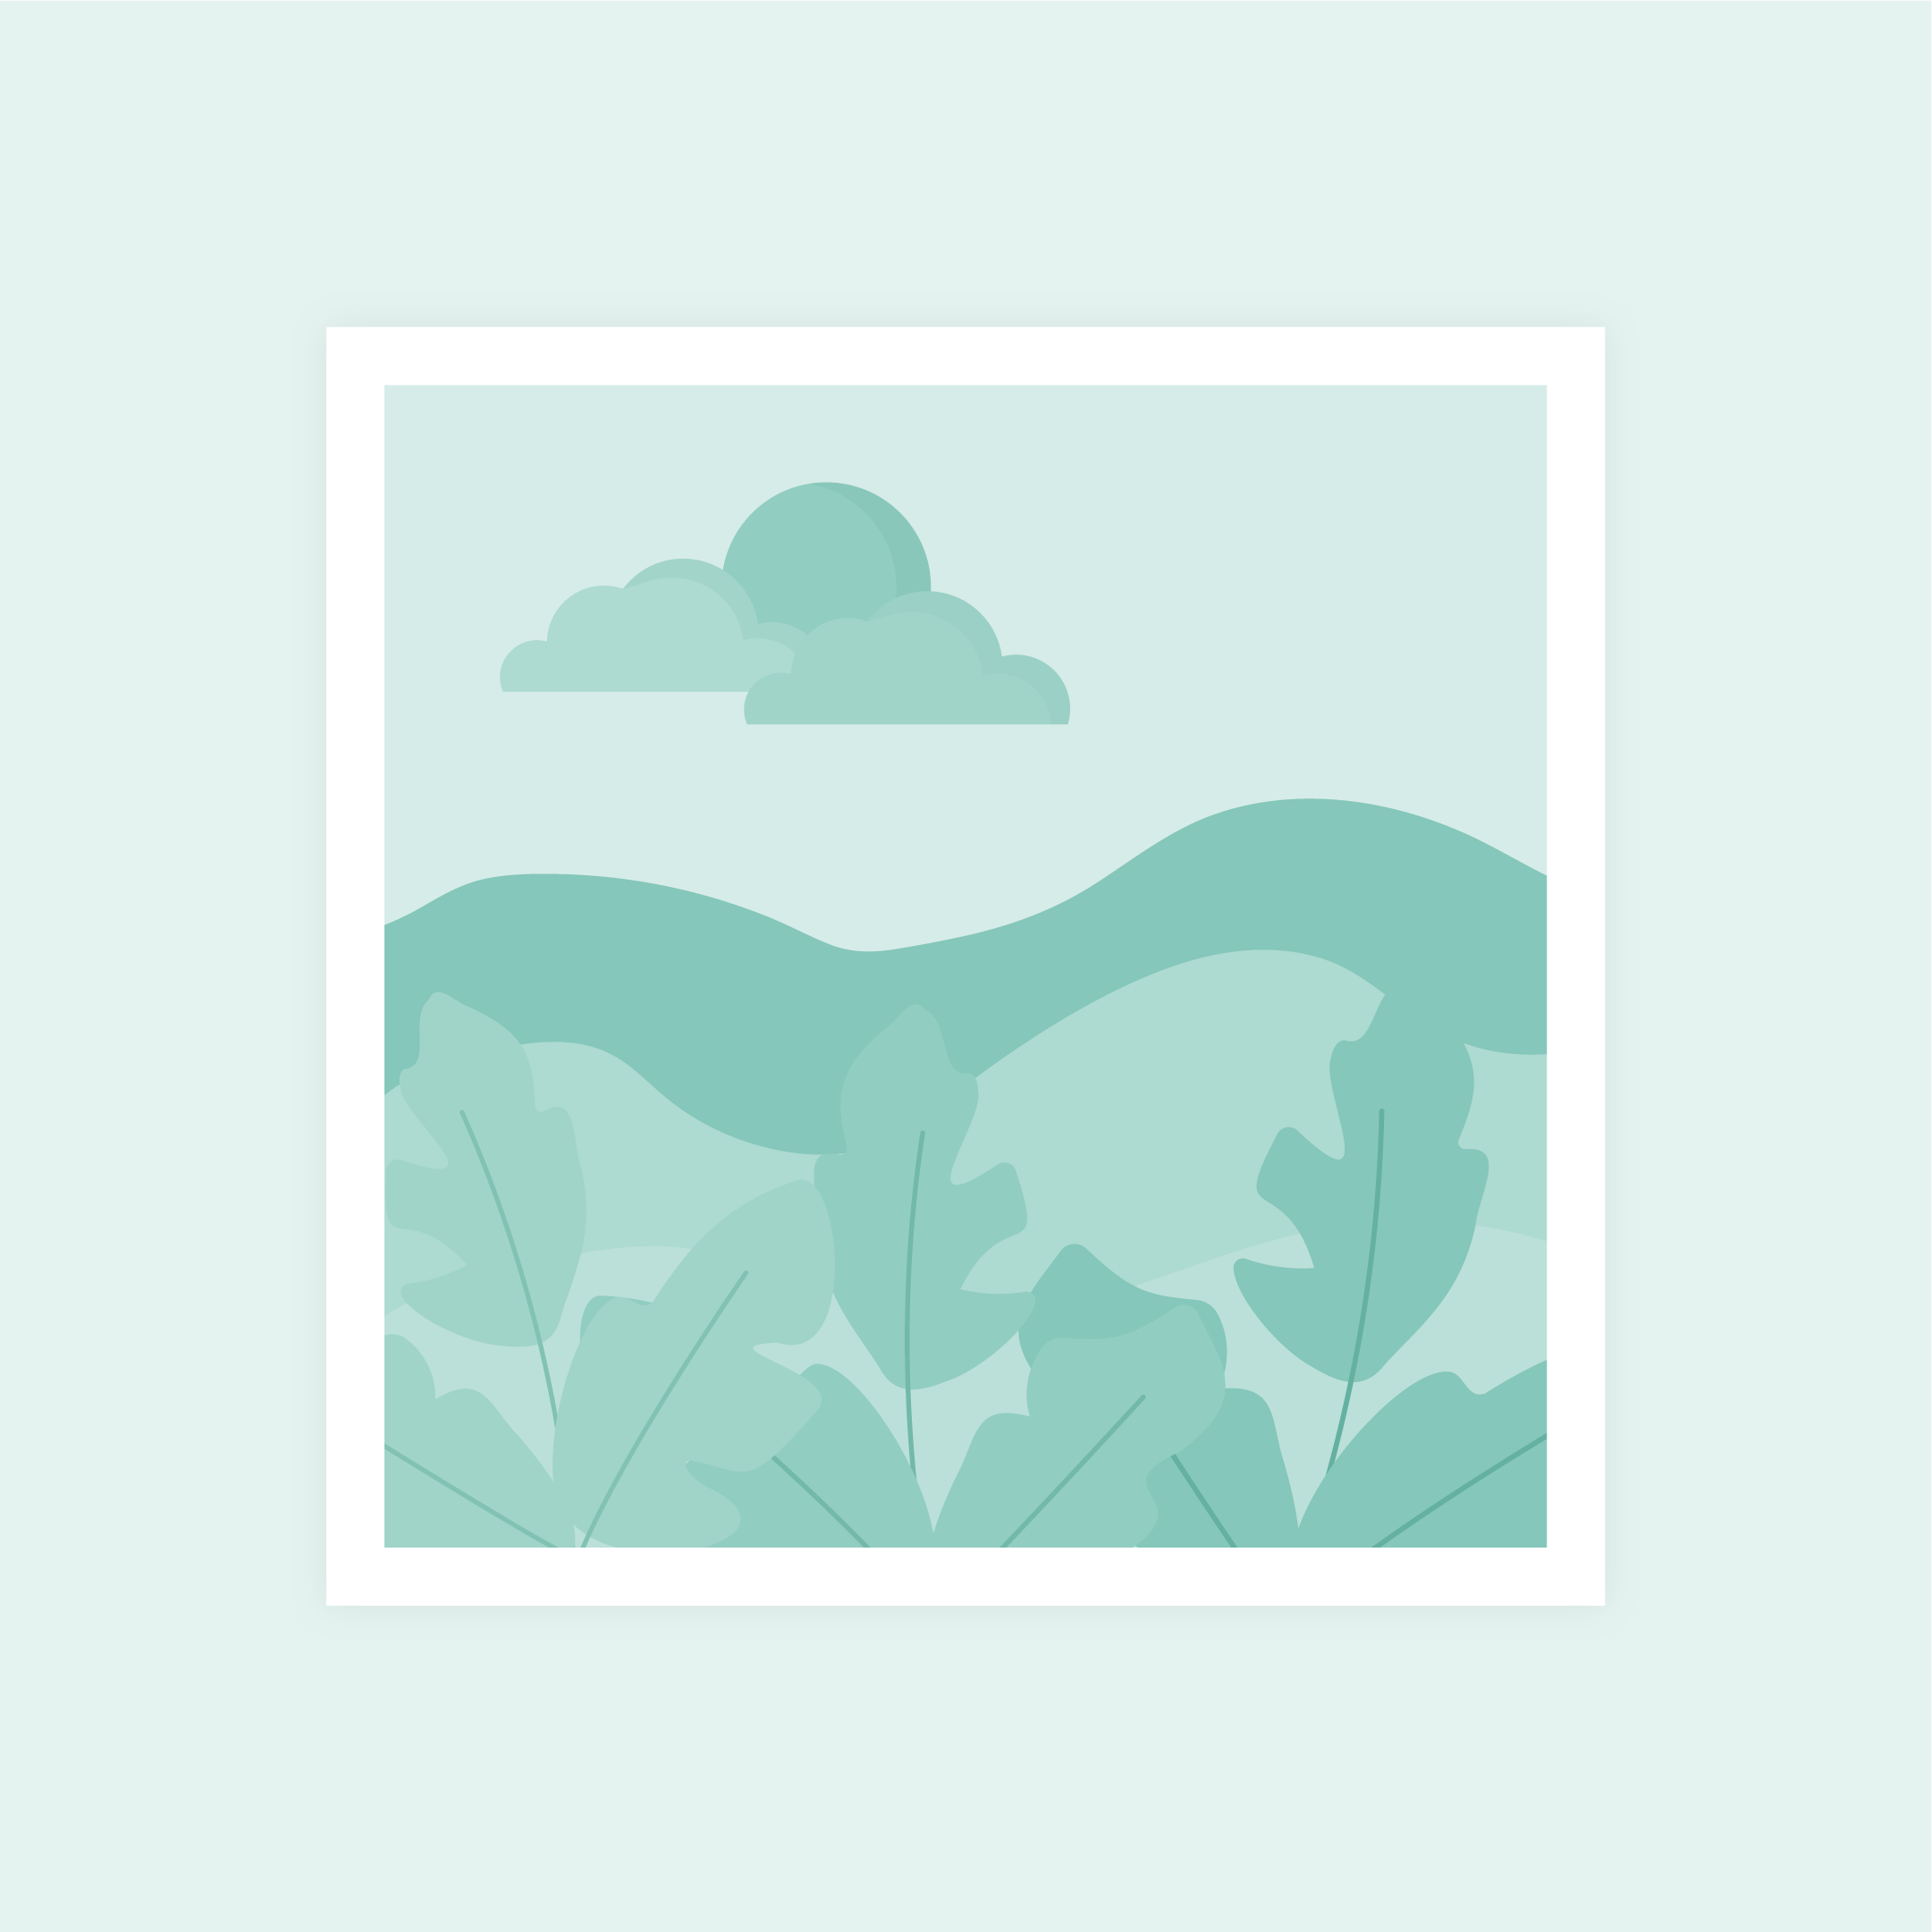 Vector illustration of a green monochromatic abstract landscape with sun & clouds in flat design style